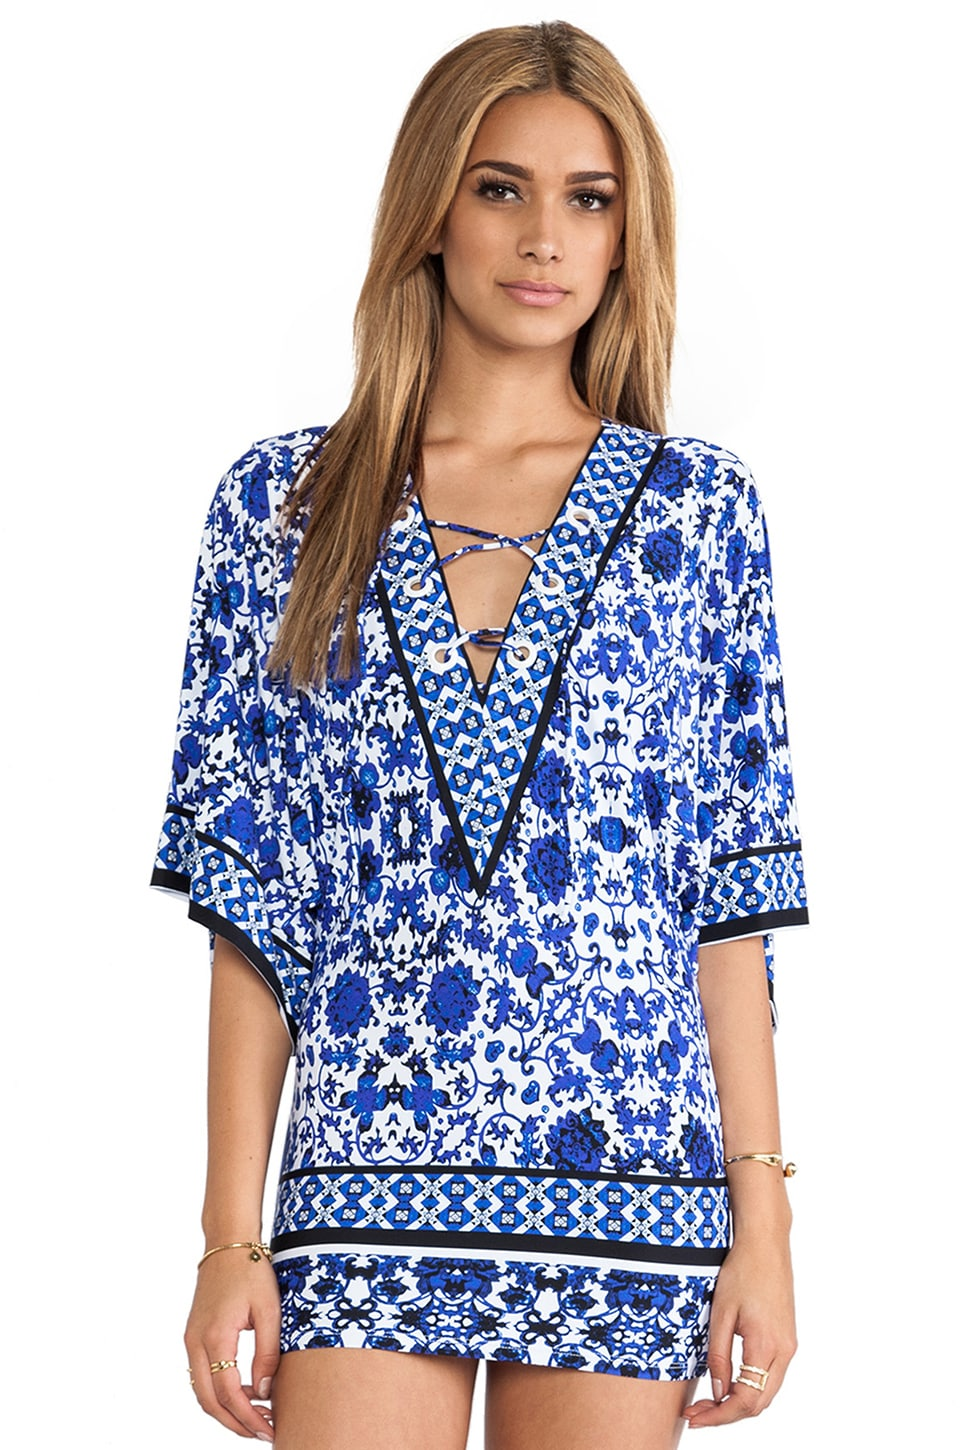 Nanette Lepore Saint Etienne Tunic Cover Up in Navy